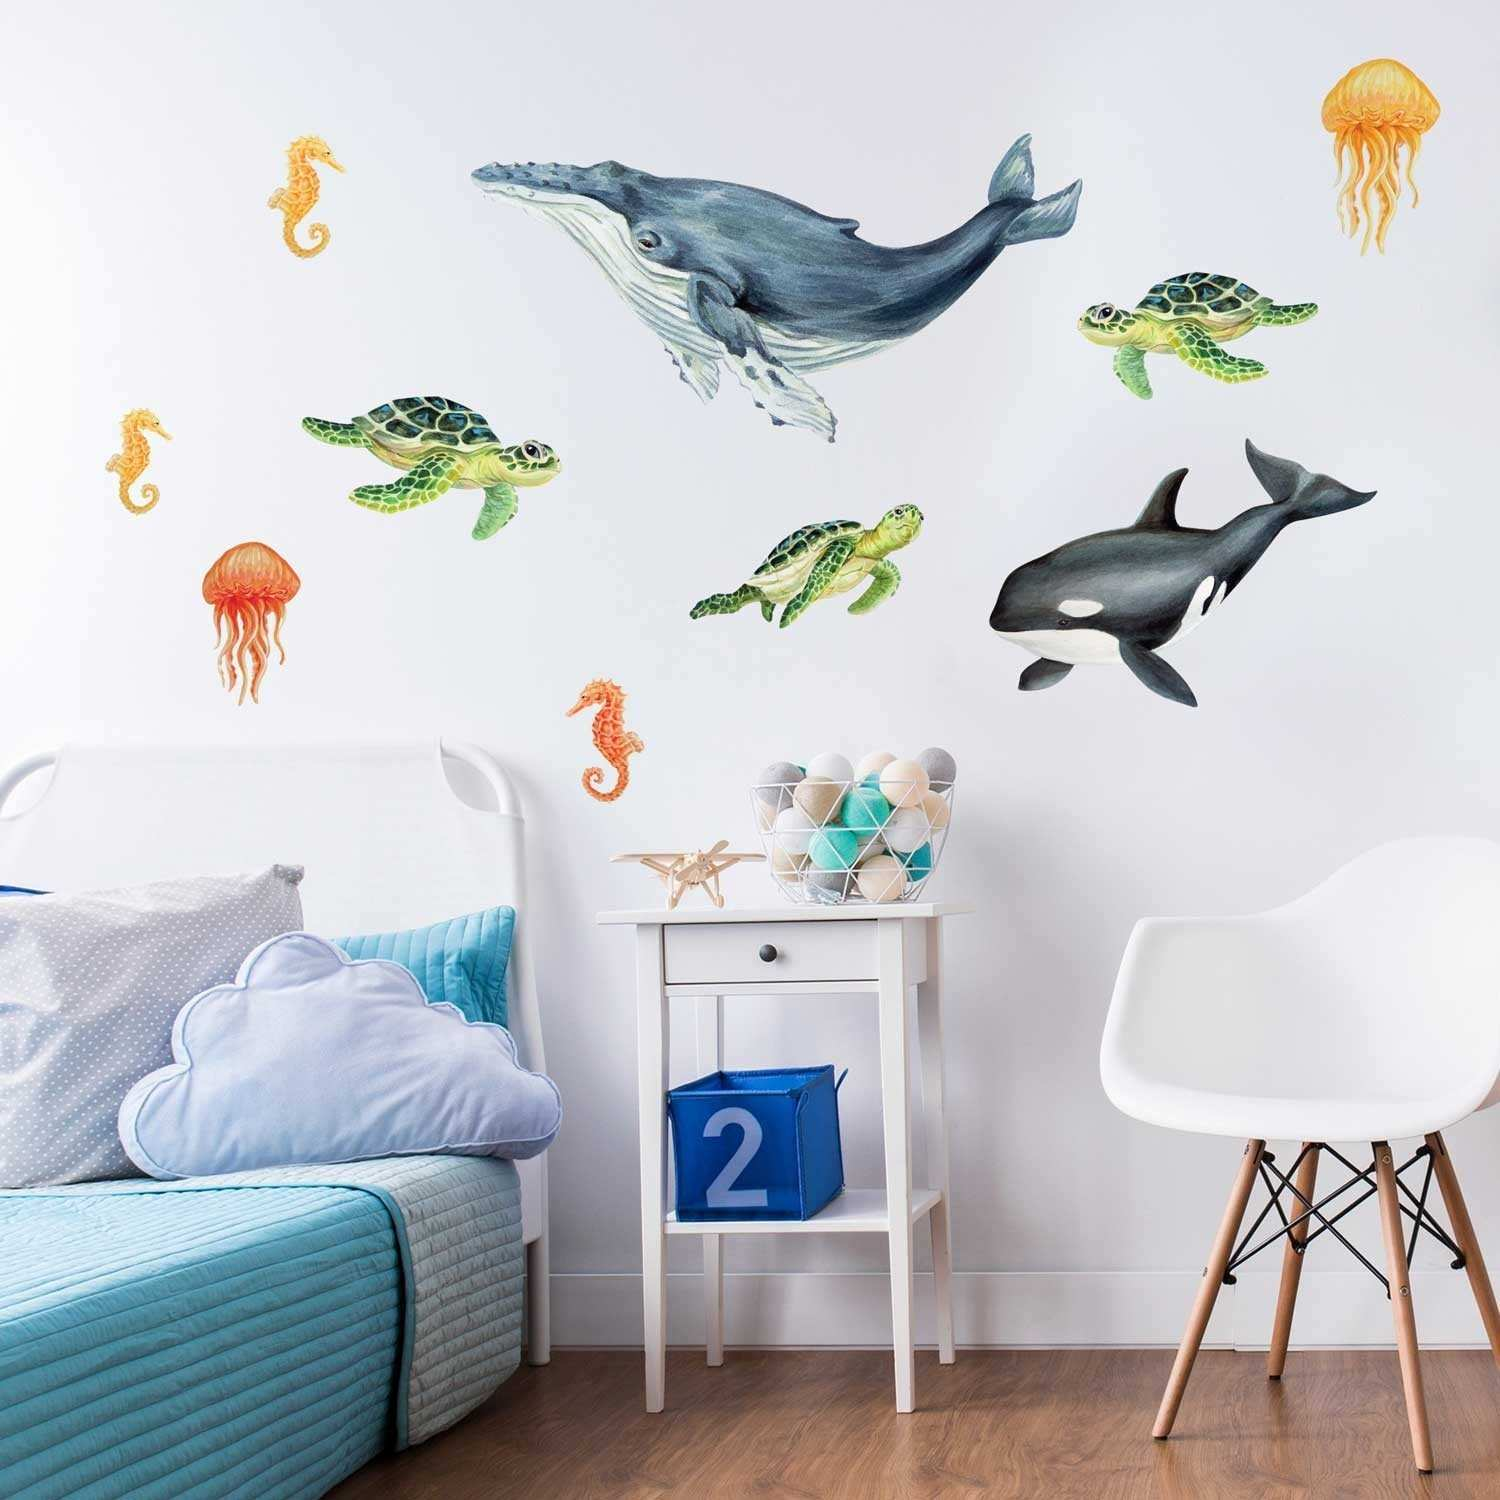 33 Lovely Paper Art for Wall Decoration